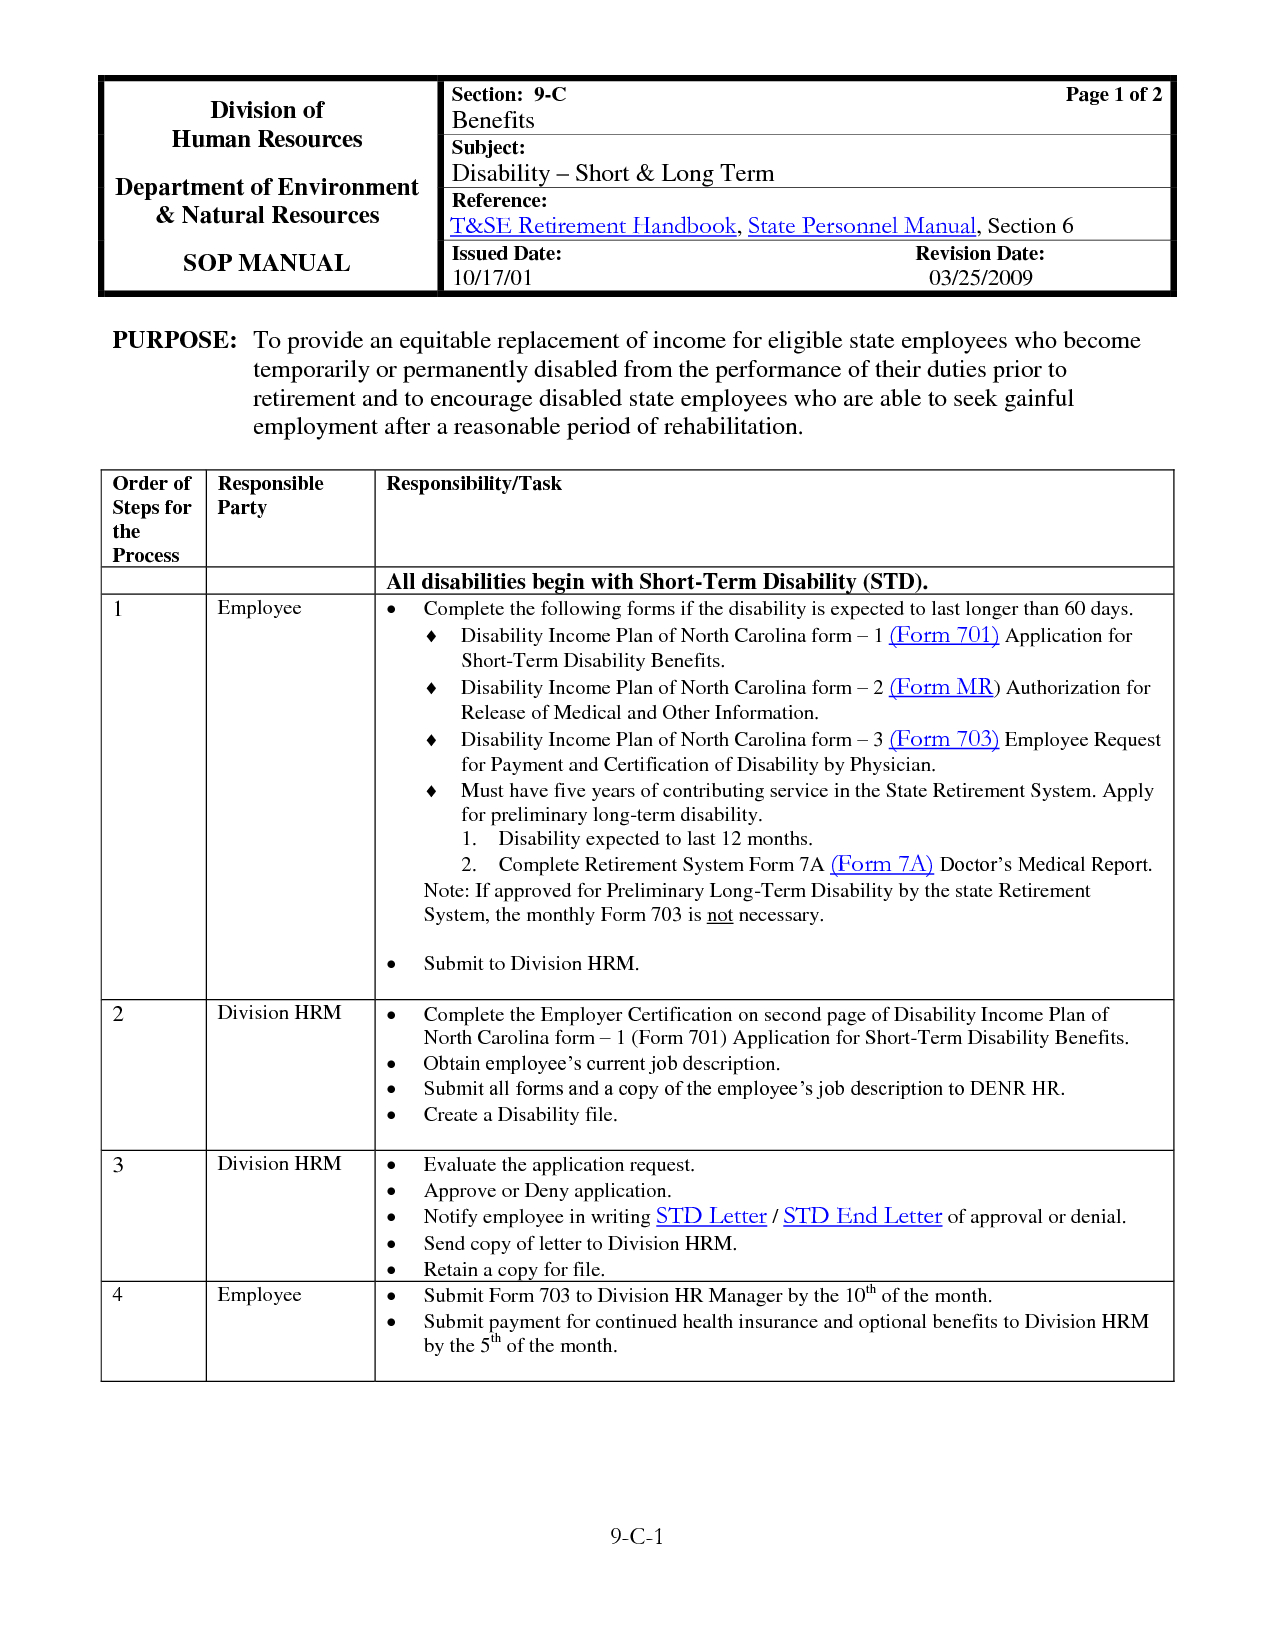 Simple Procedures Manual Template – Teplates For Every Day With Procedure Manual Template Word Free